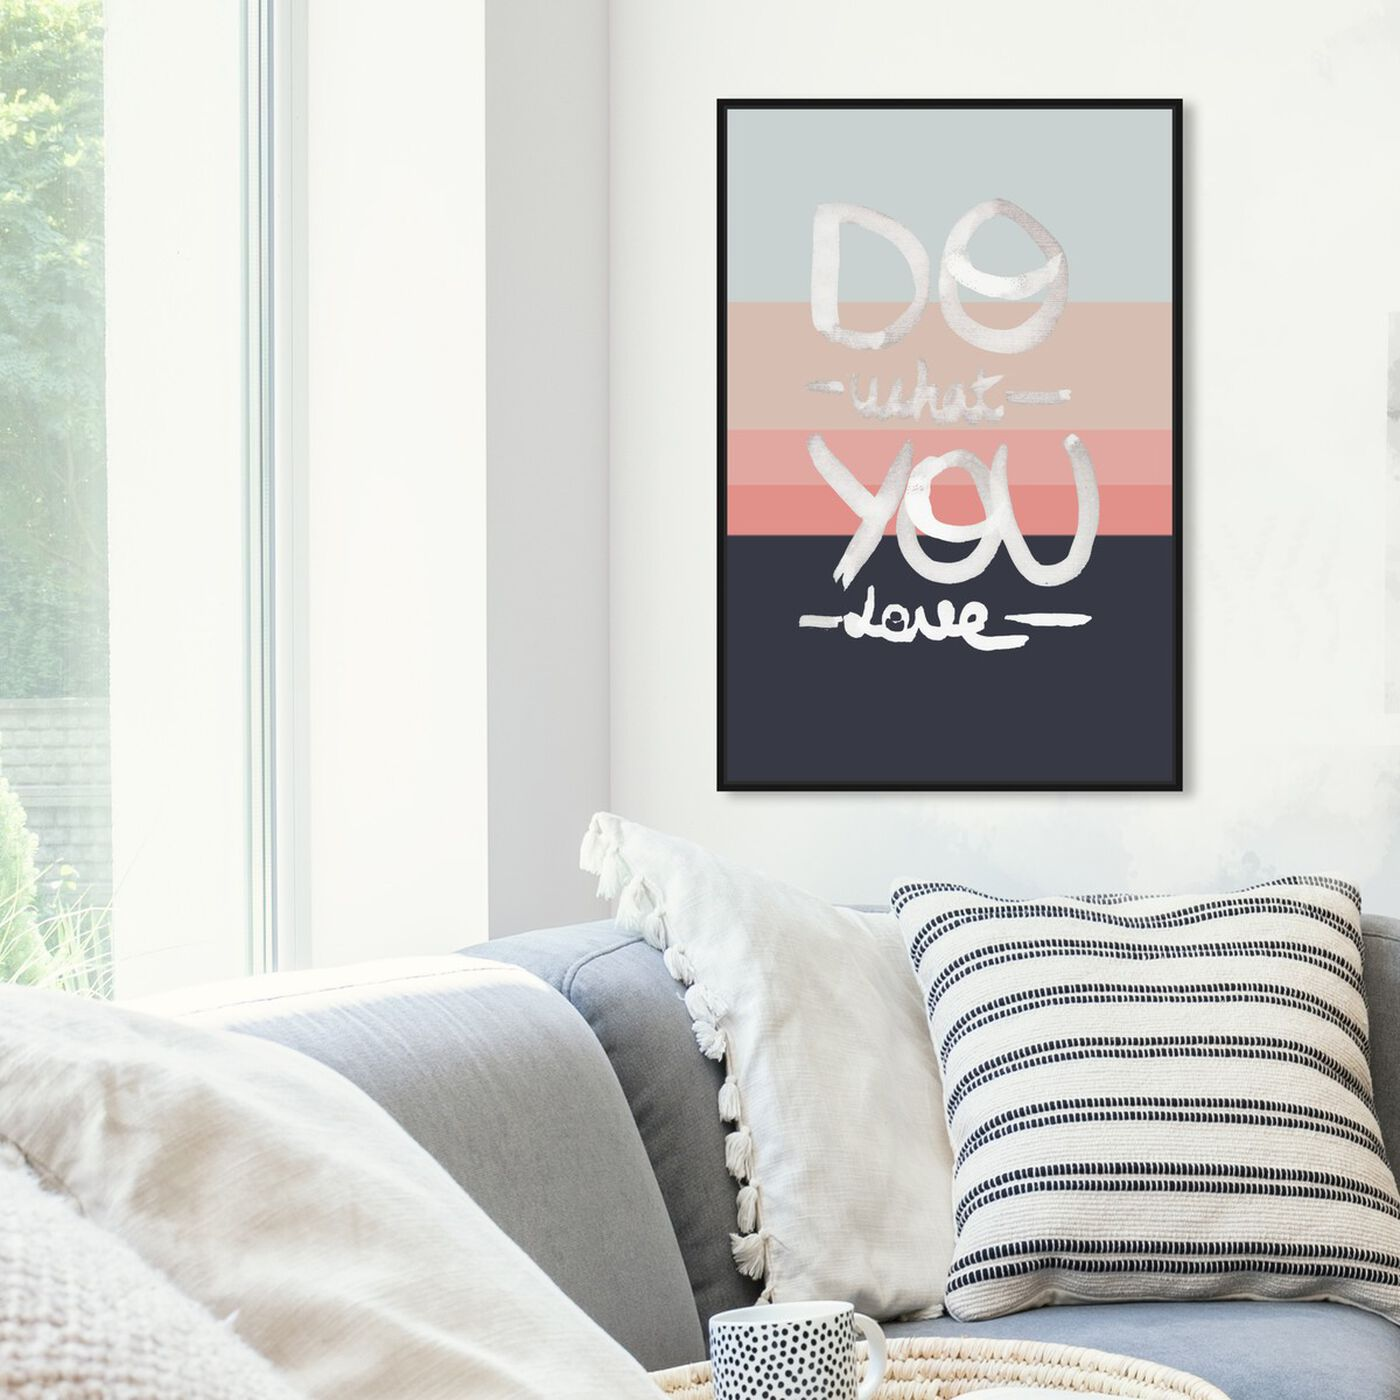 Hanging view of What You Love featuring typography and quotes and love quotes and sayings art.